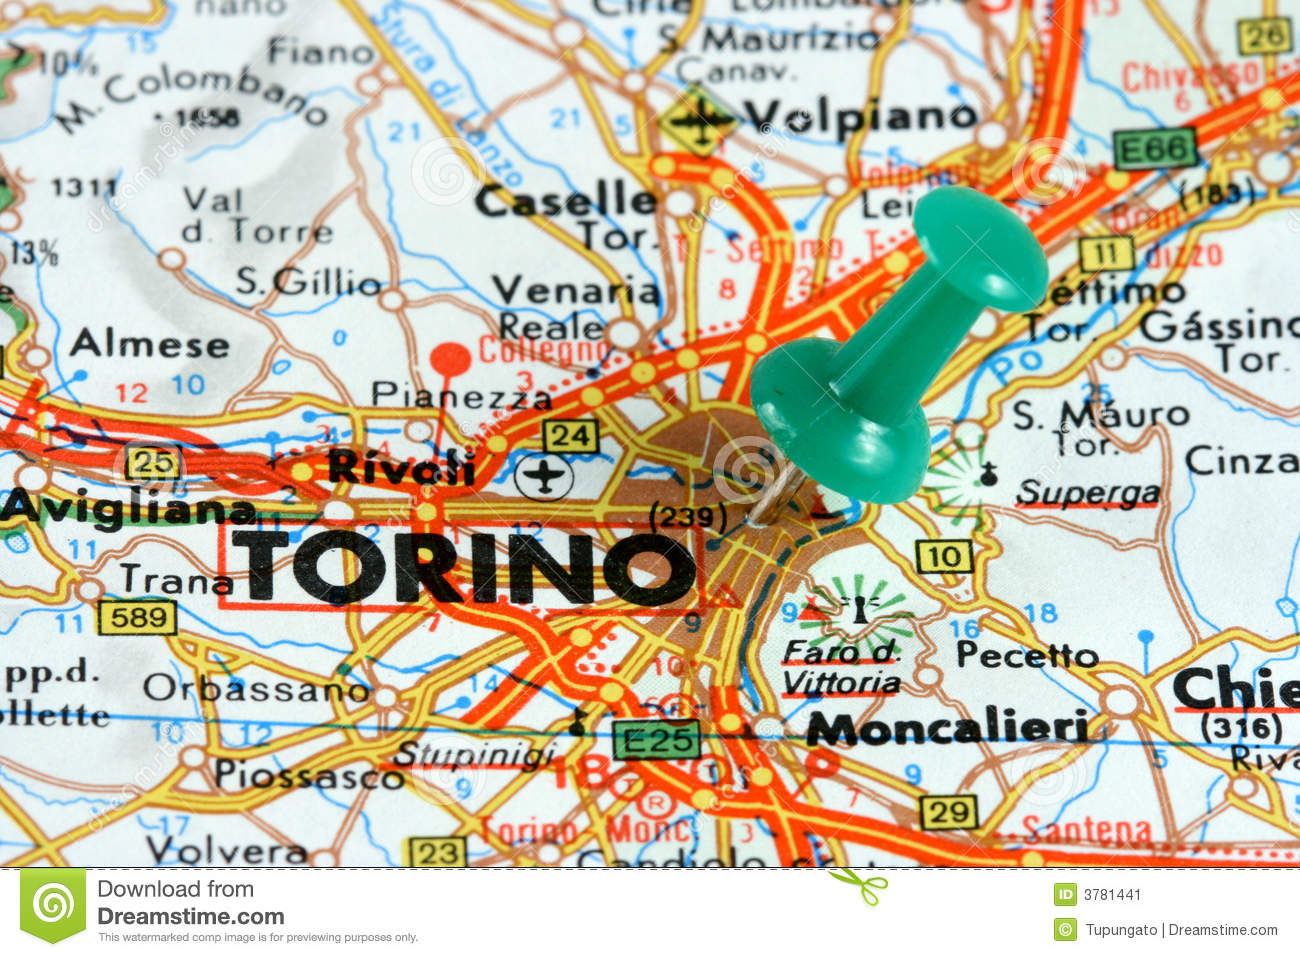 Map Of Italy Torino.Turin On The Map Stock Image Image Of Pinned Route